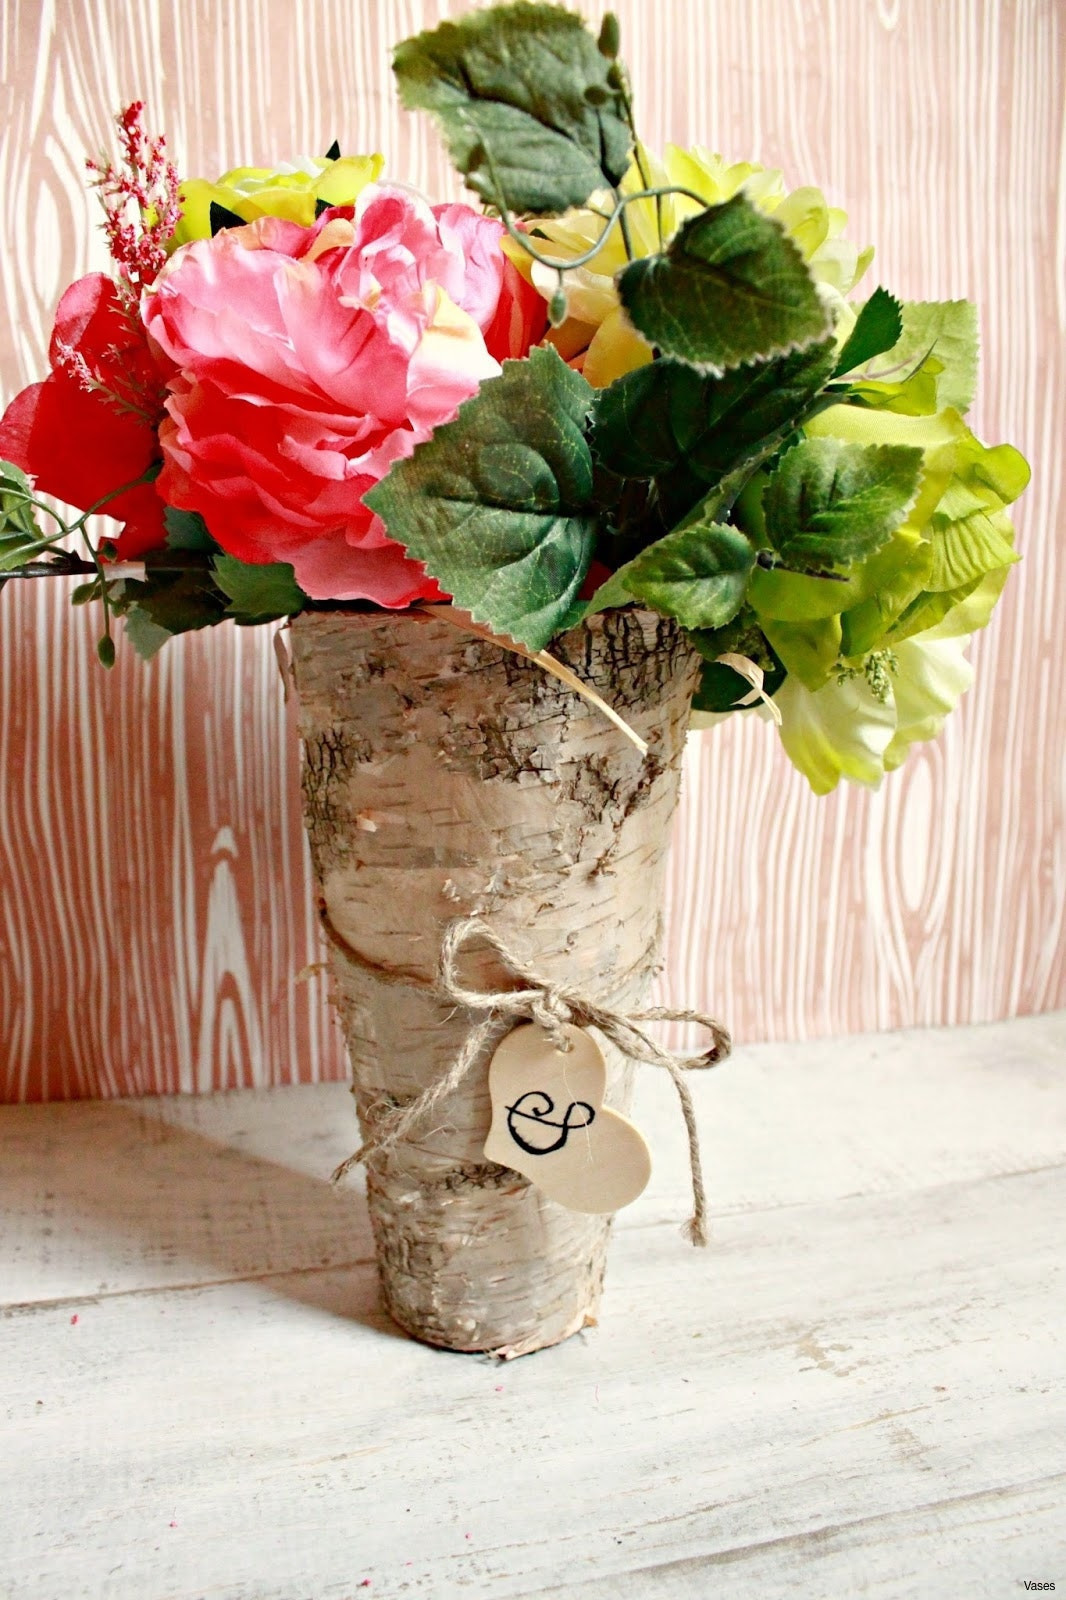 Flowers without Vase Of Mini Glass Vase Image Elegant Flower Arrangements Diy H Vases Diy Pertaining to Elegant Flower Arrangements Diy H Vases Diy Wood Vase I 0d Base